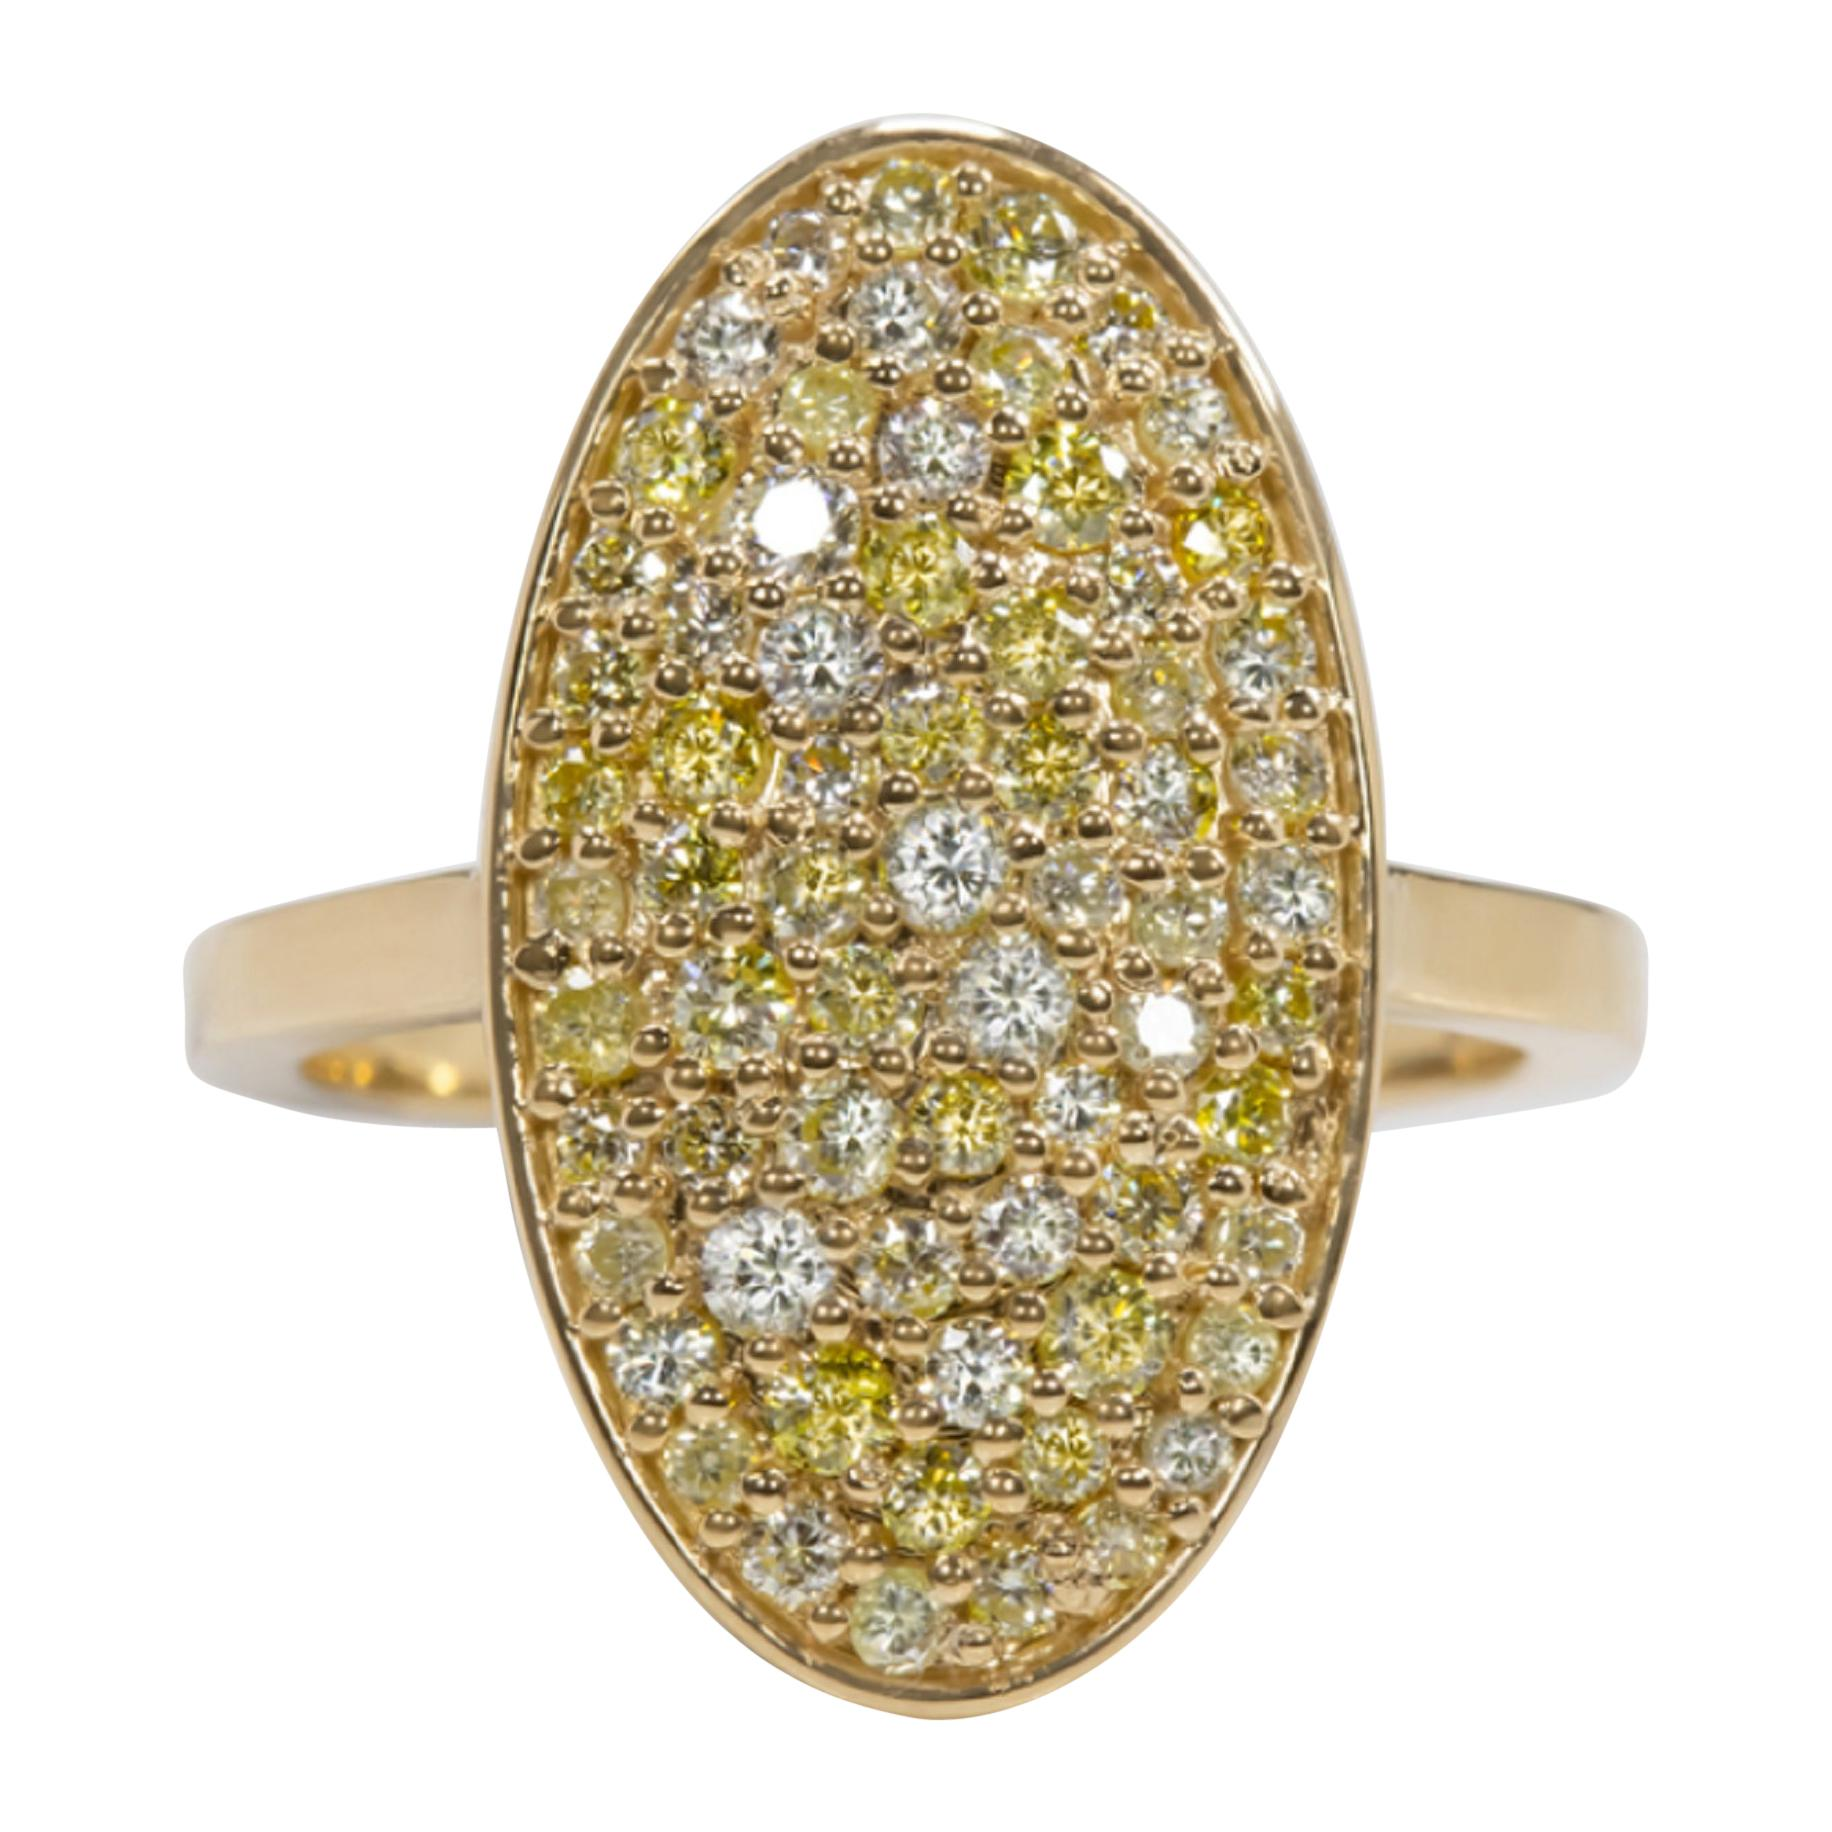 2 Carat Fancy Yellow and White Diamond Gold Cocktail Ring